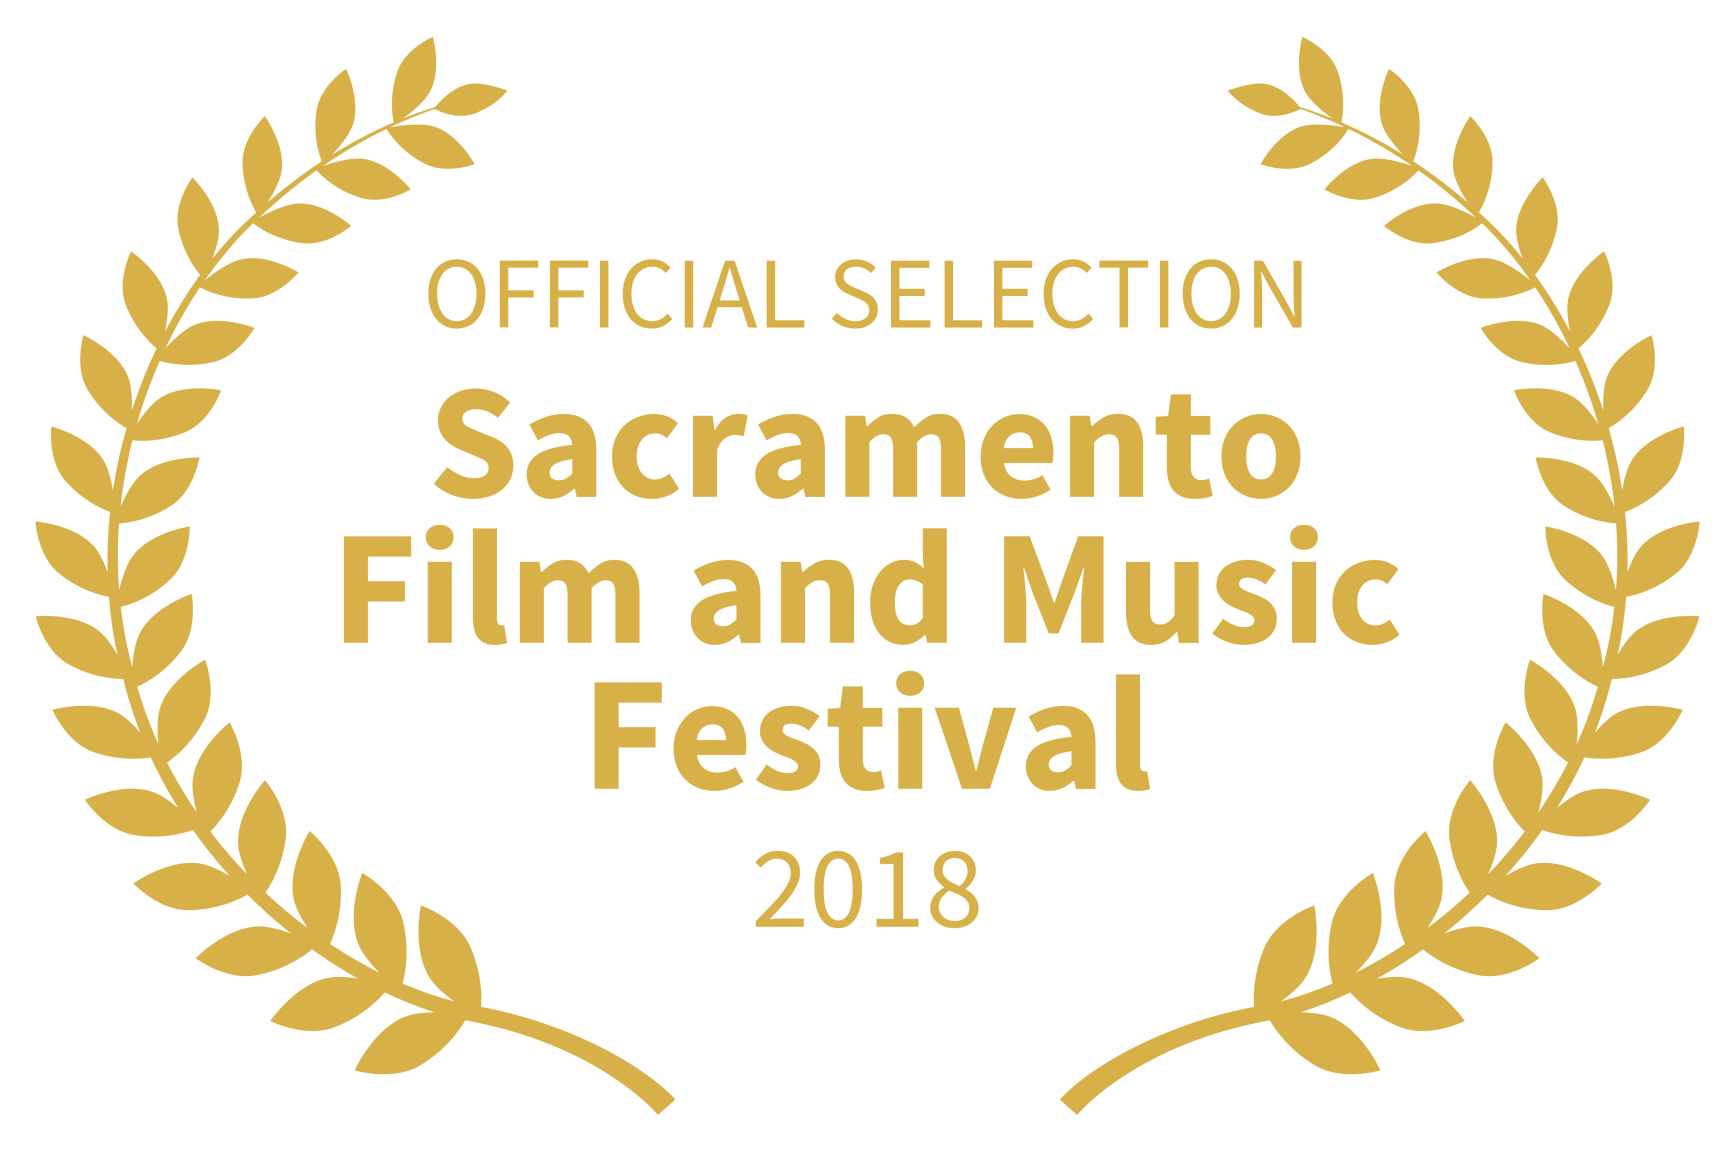 OFFICIAL SELECTION - Sacramento Film and Music Festival - 2018.png